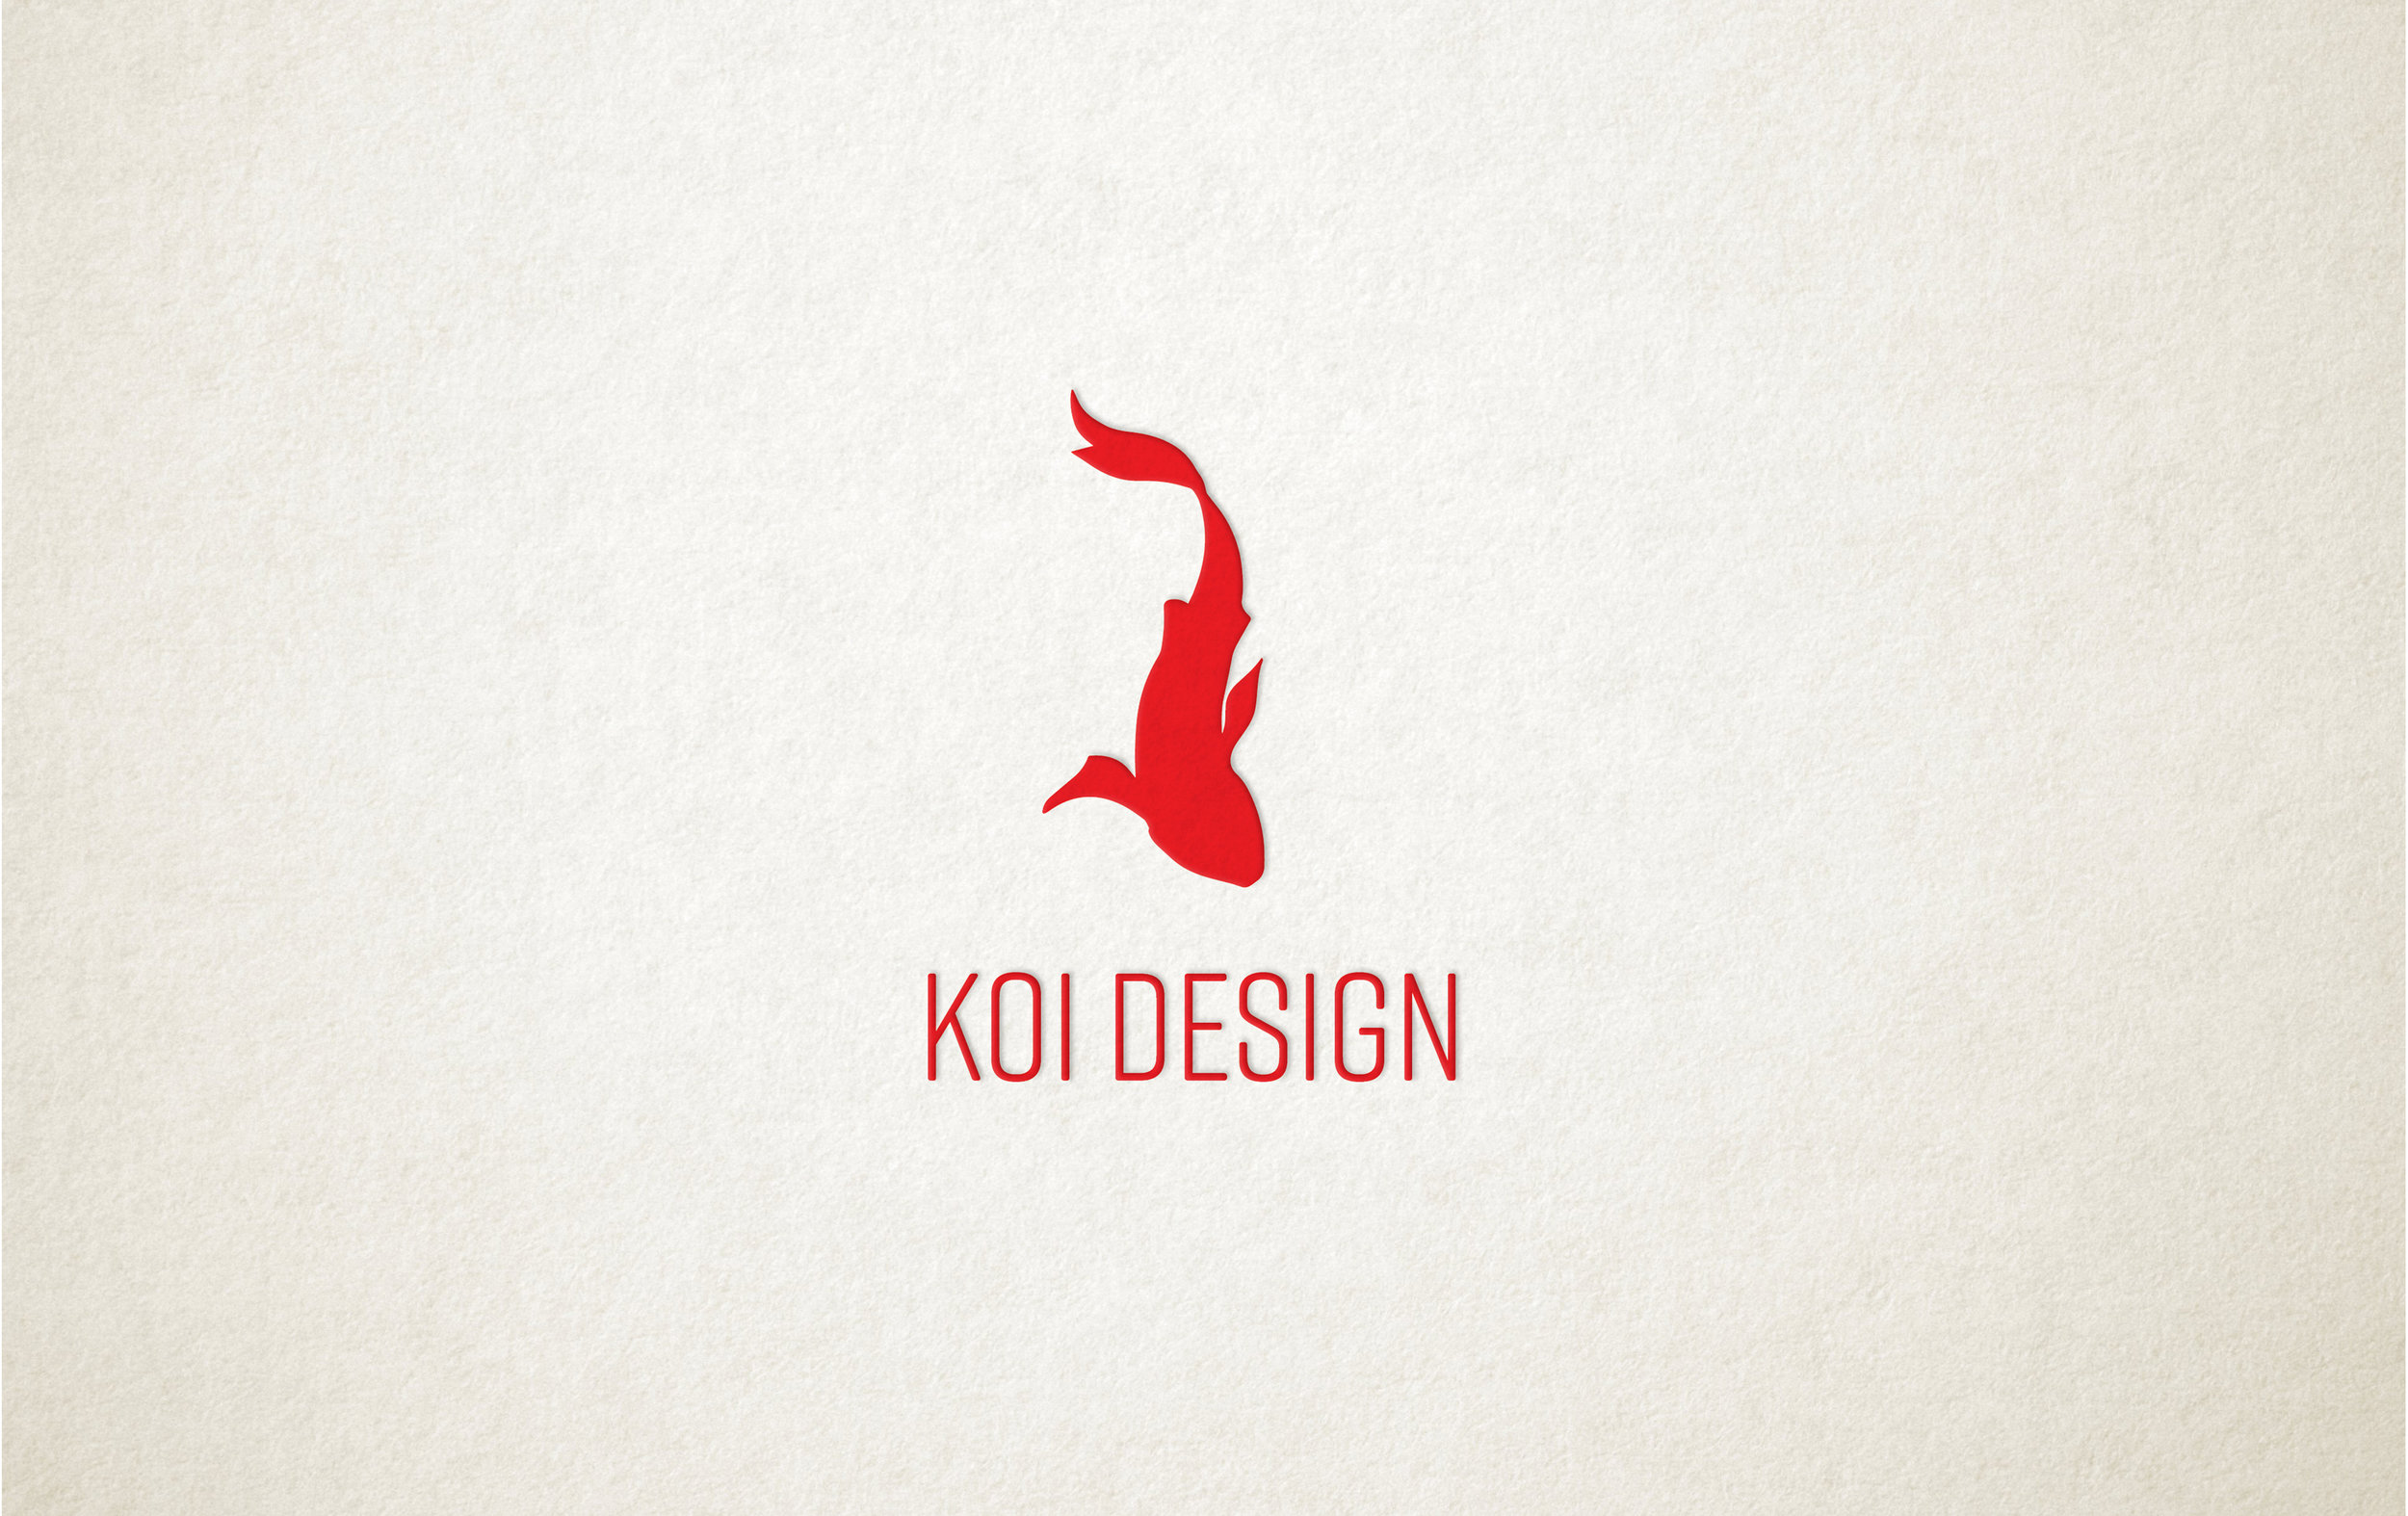 Designed by Keith Costa